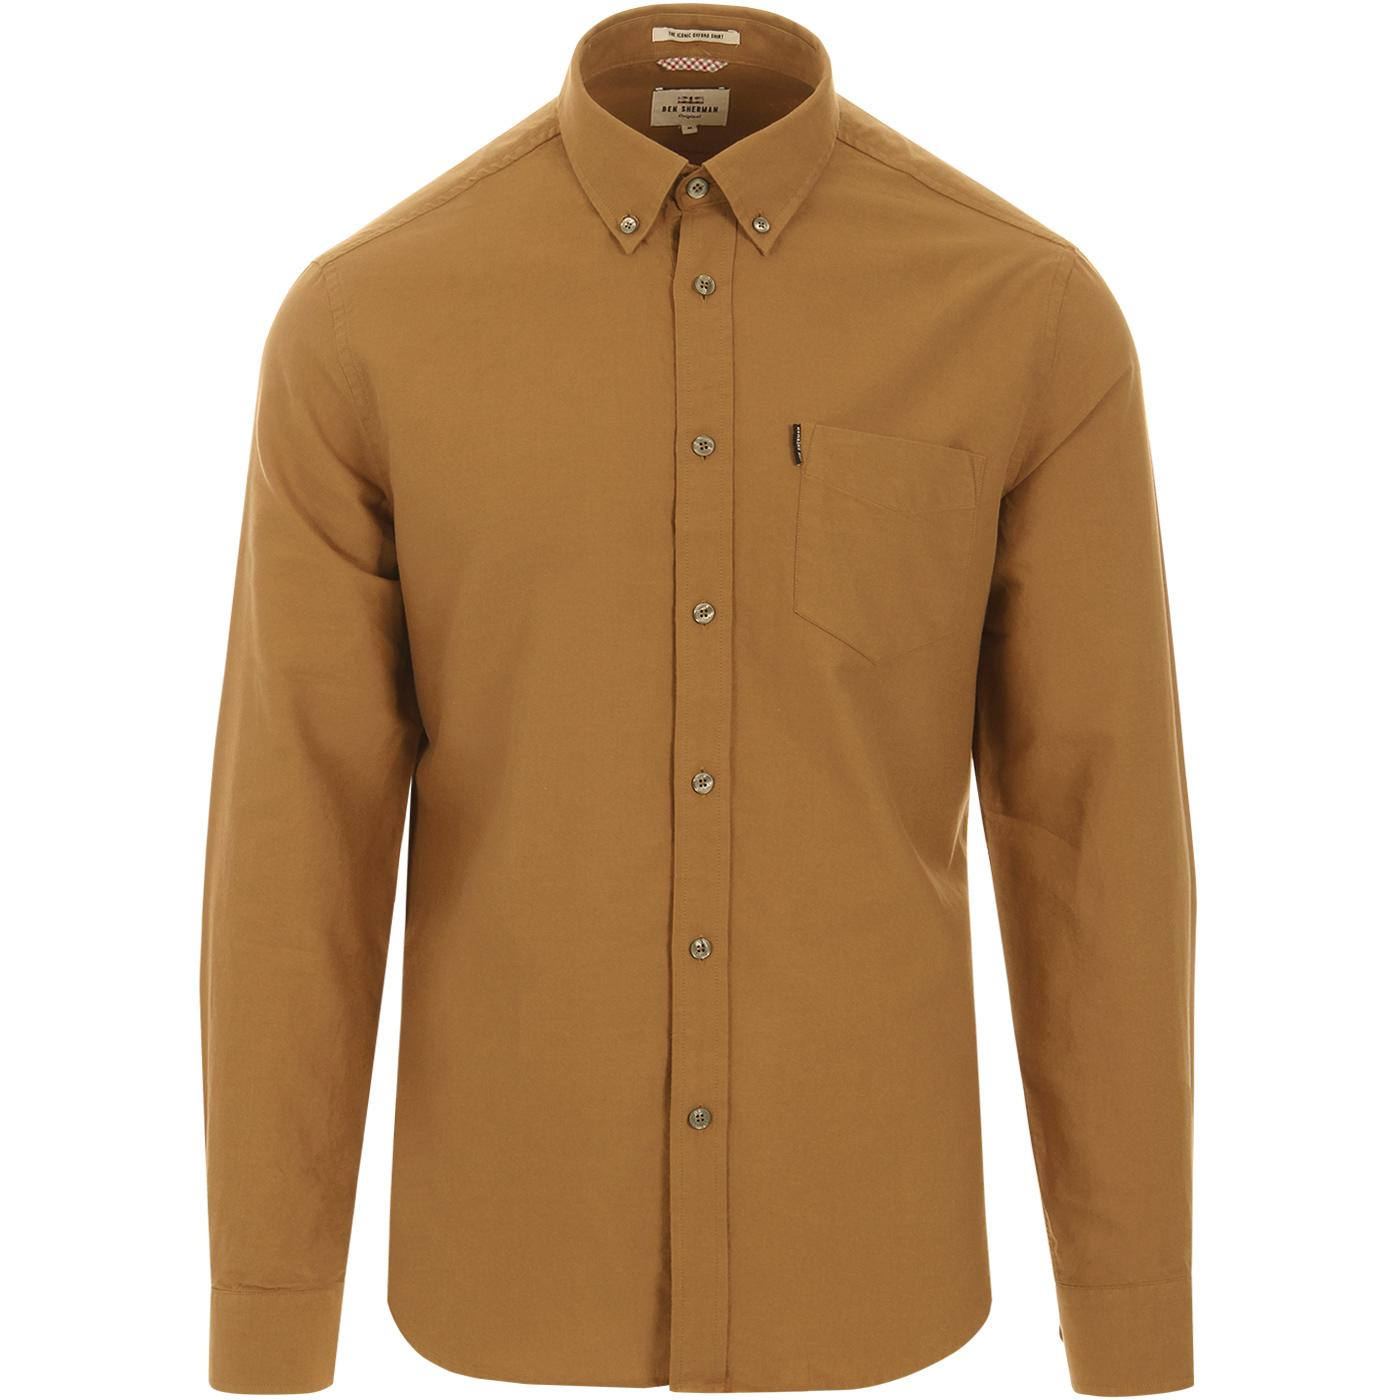 BEN SHERMAN Mod Button Down Oxford Shirt CAMEL